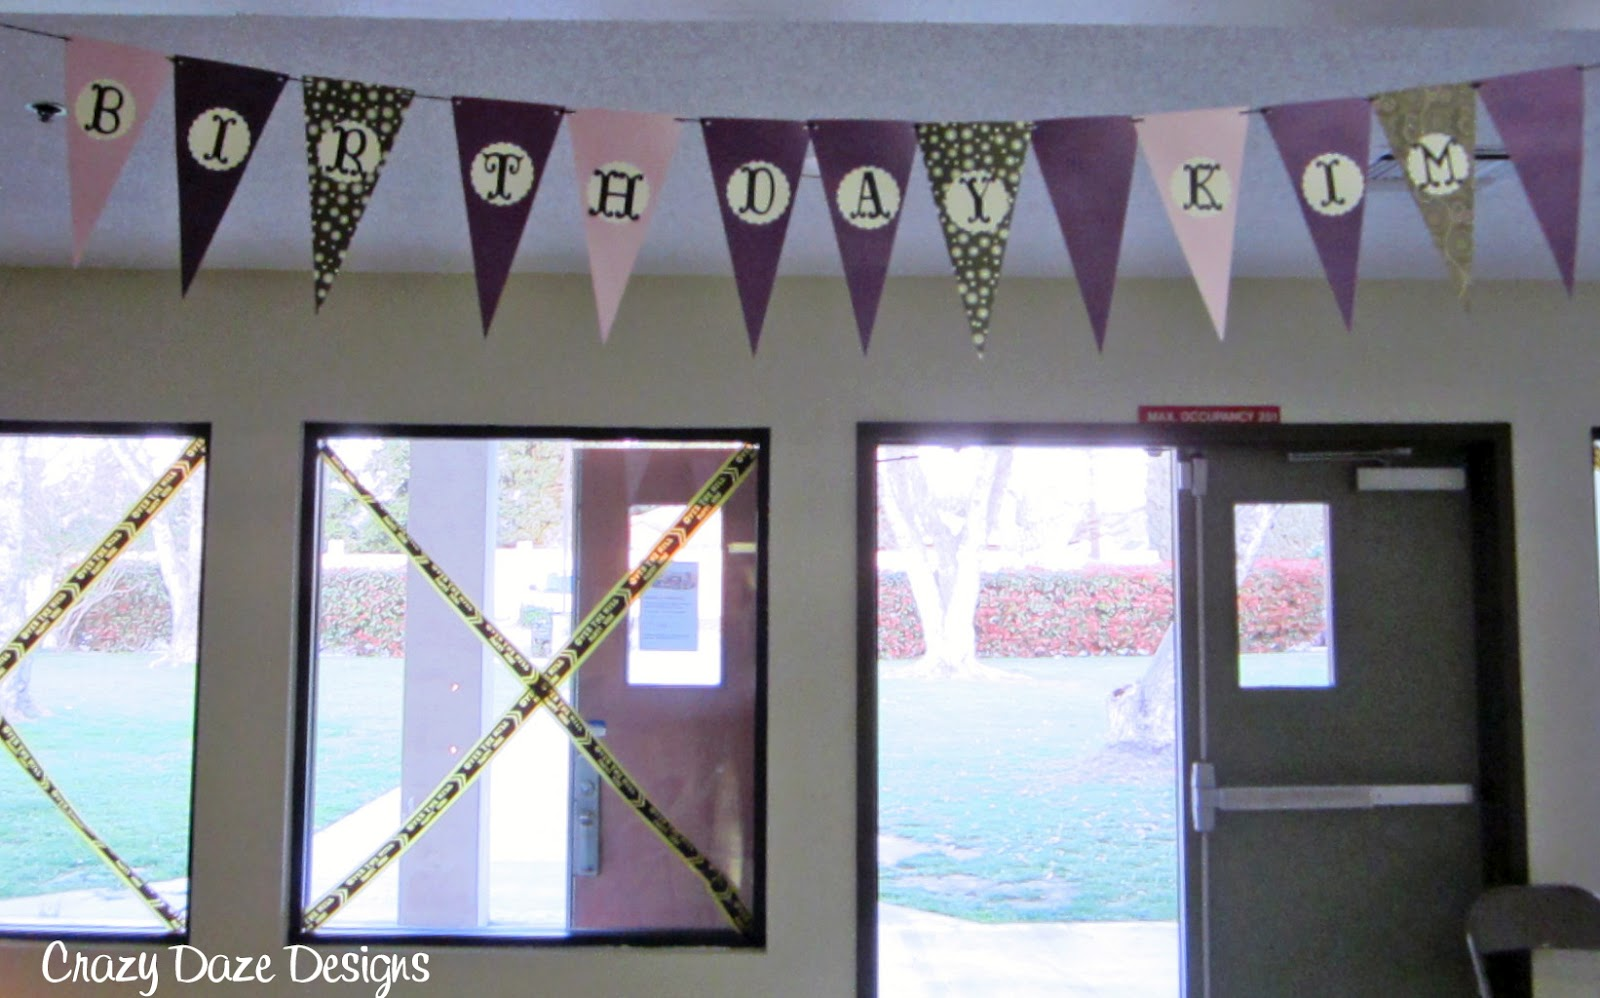 Crazy Daze Designs: A Big 50th Birthday Party